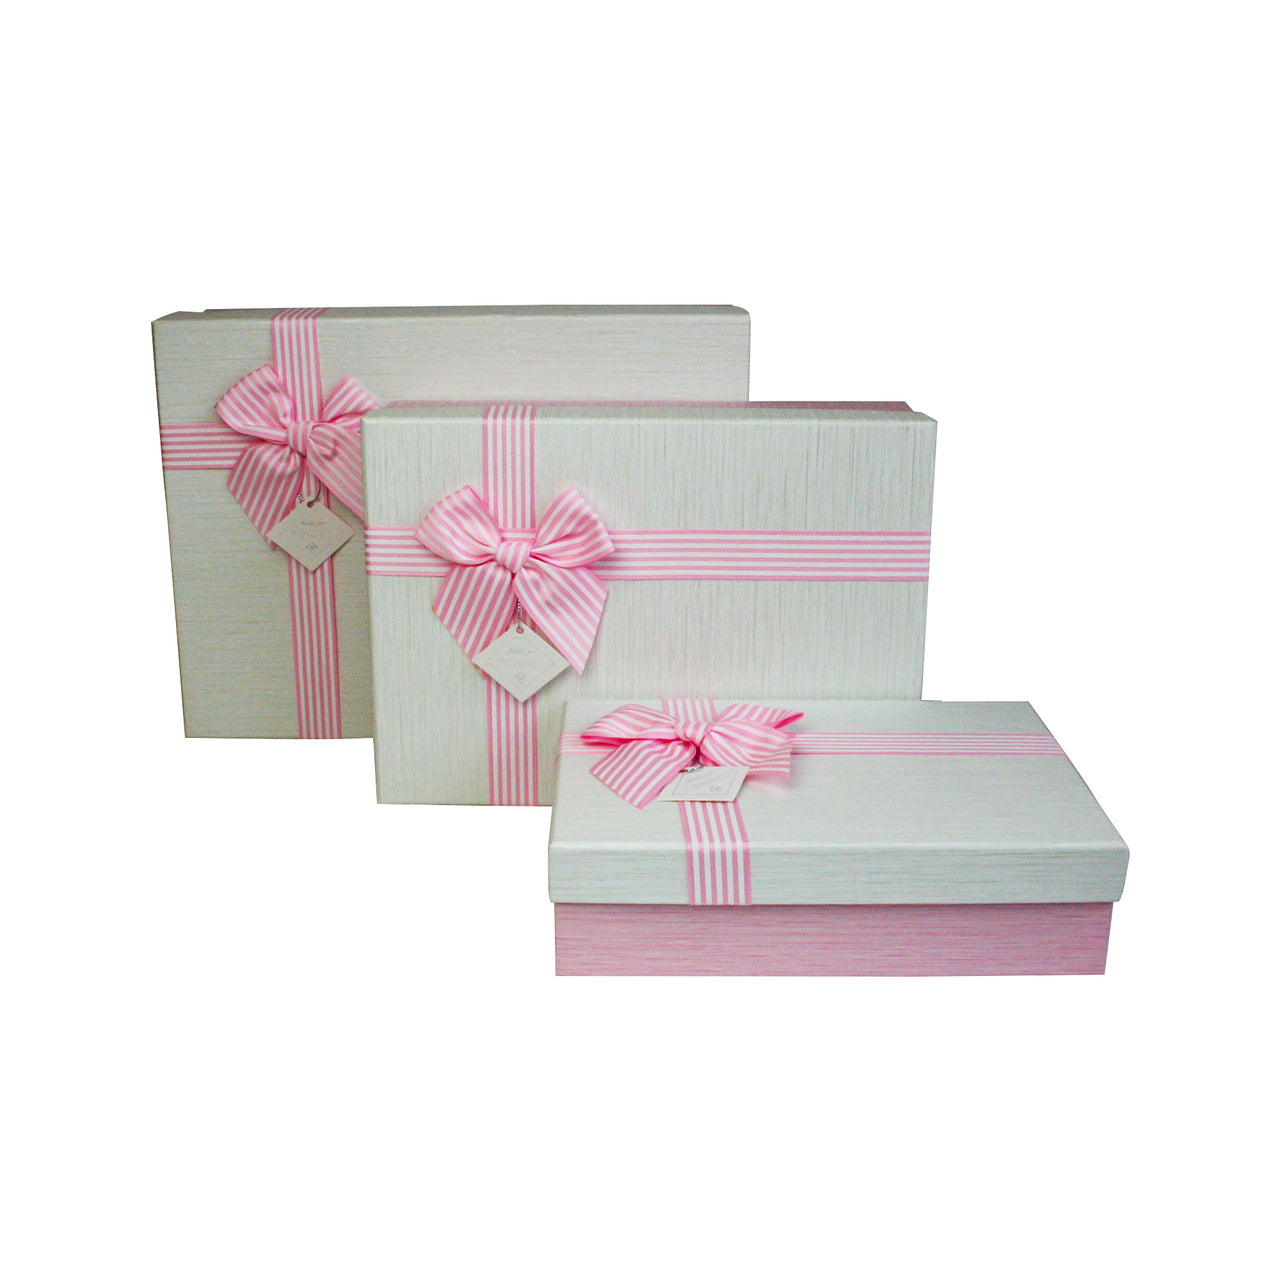 Pink White Striped Bow Gift Box - Set of 3